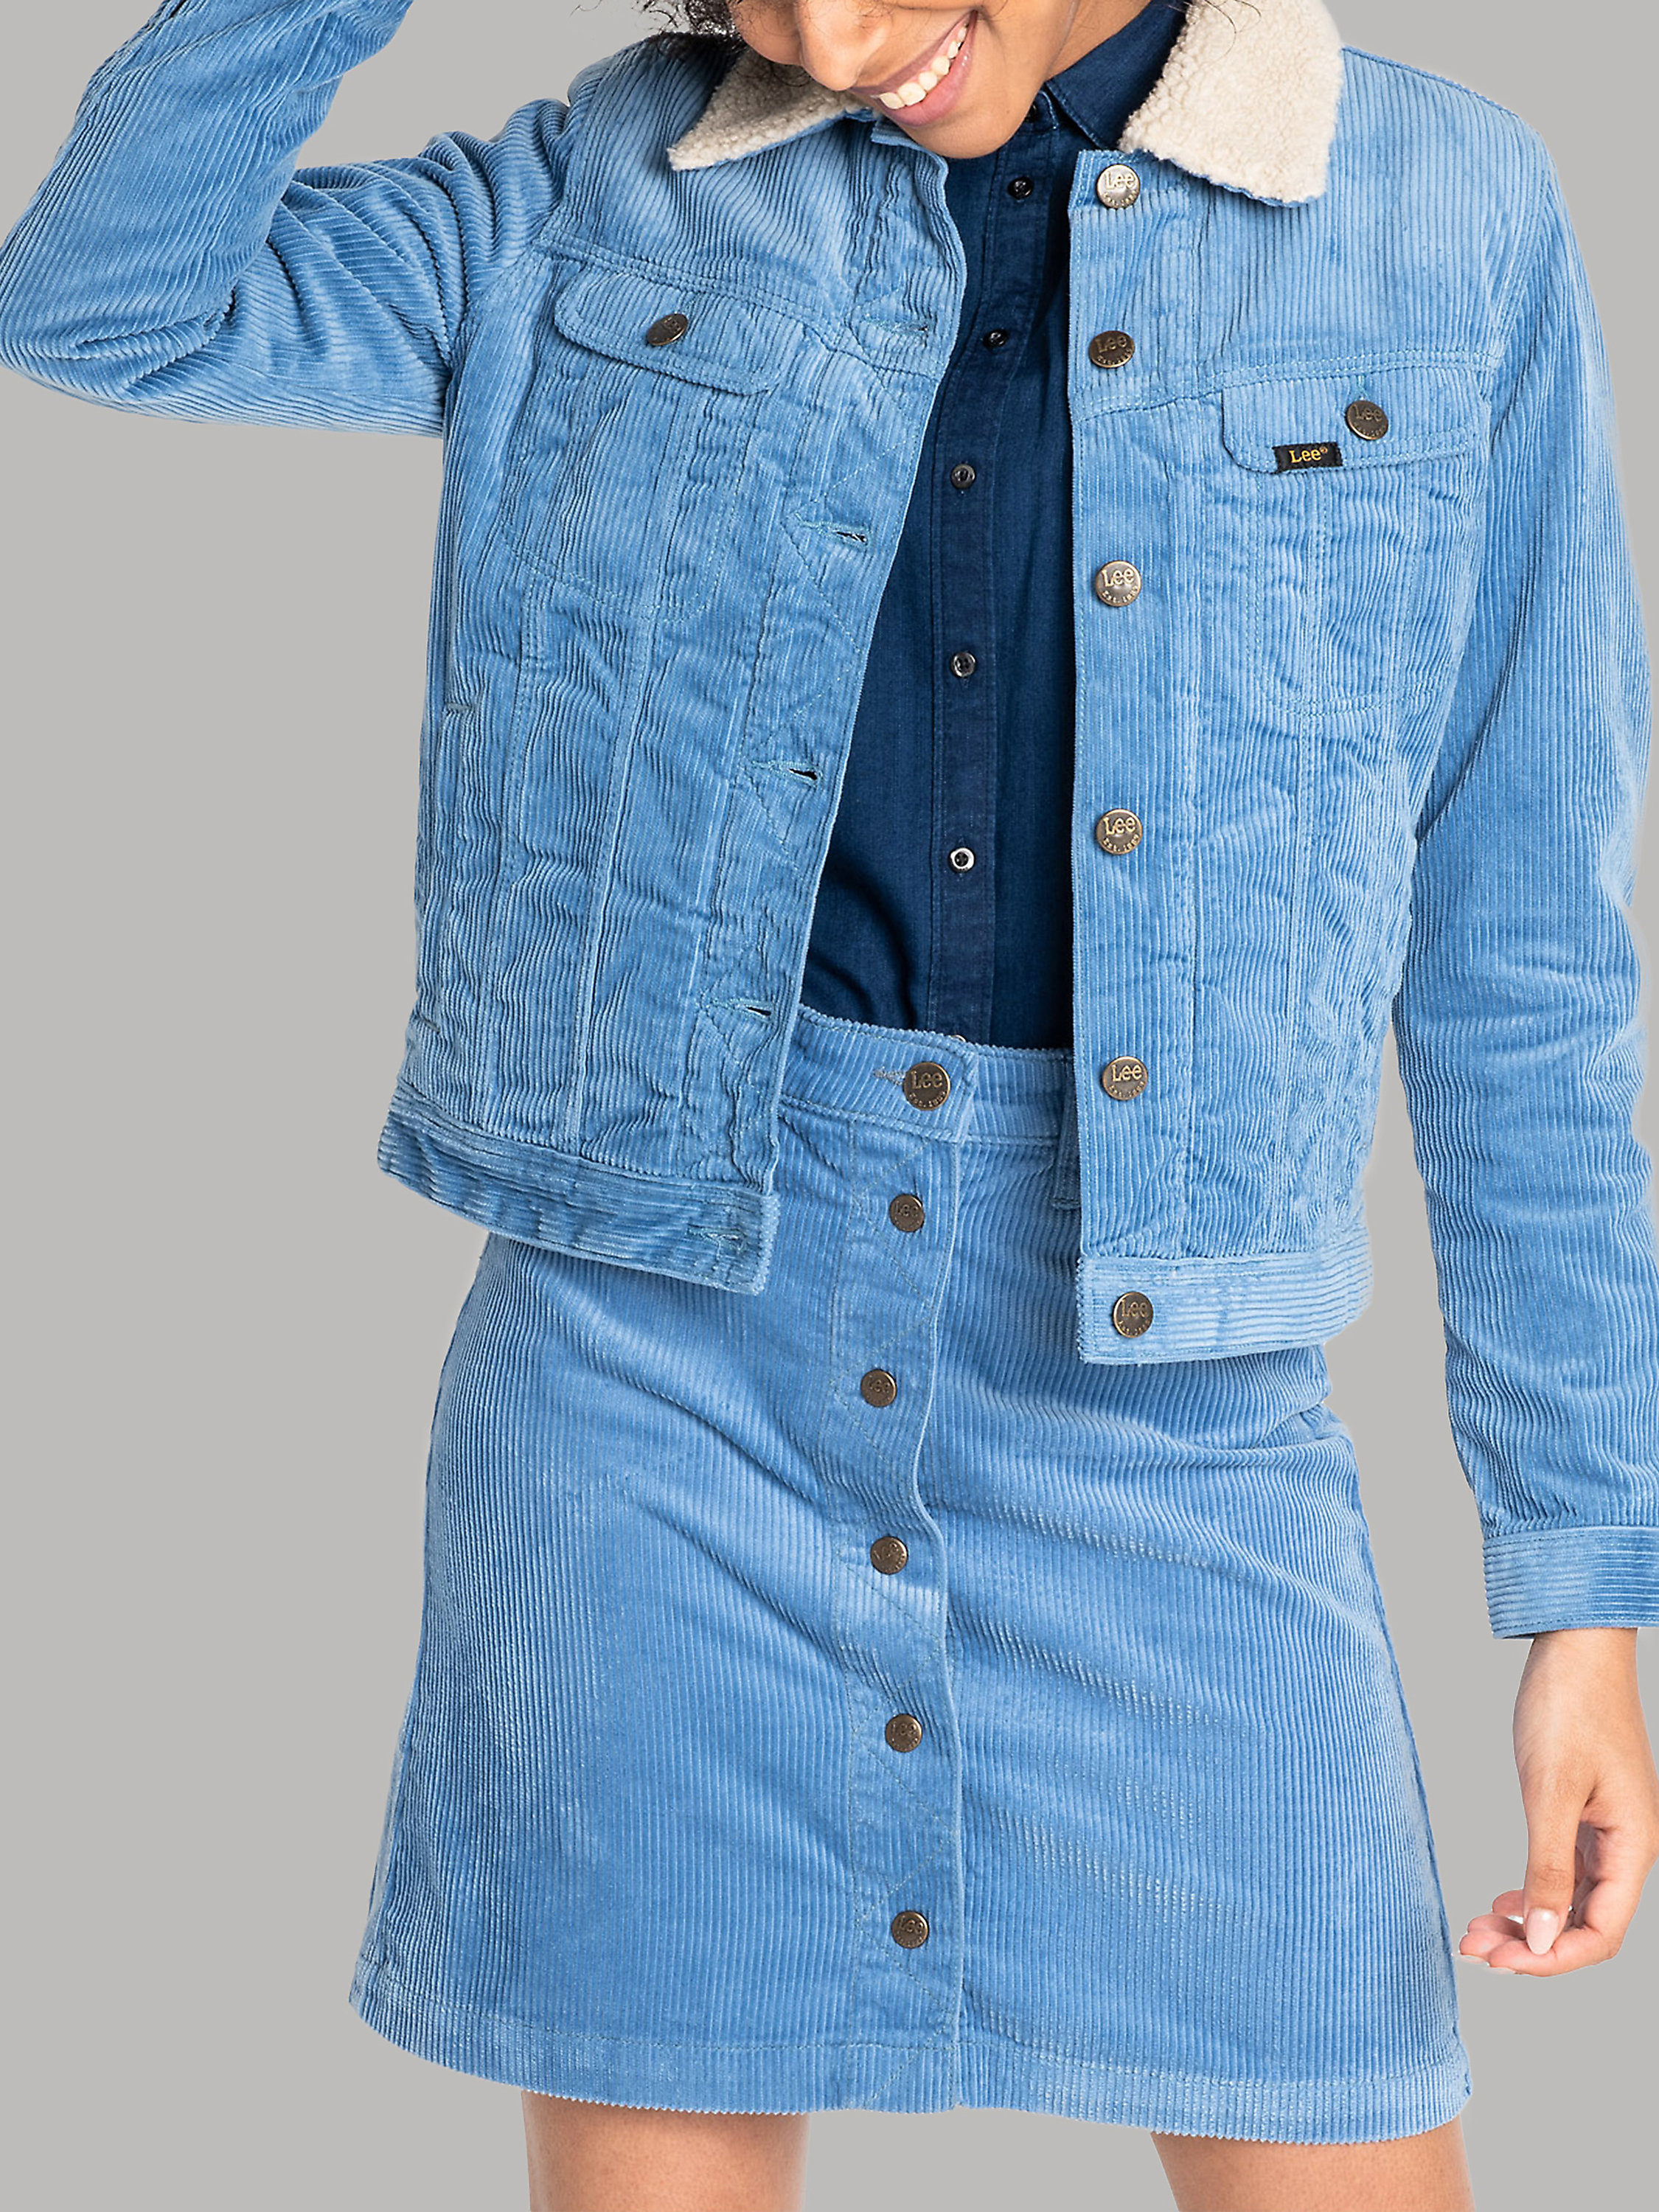 Jeans | Apparel for Men and Women | Lee Official Site